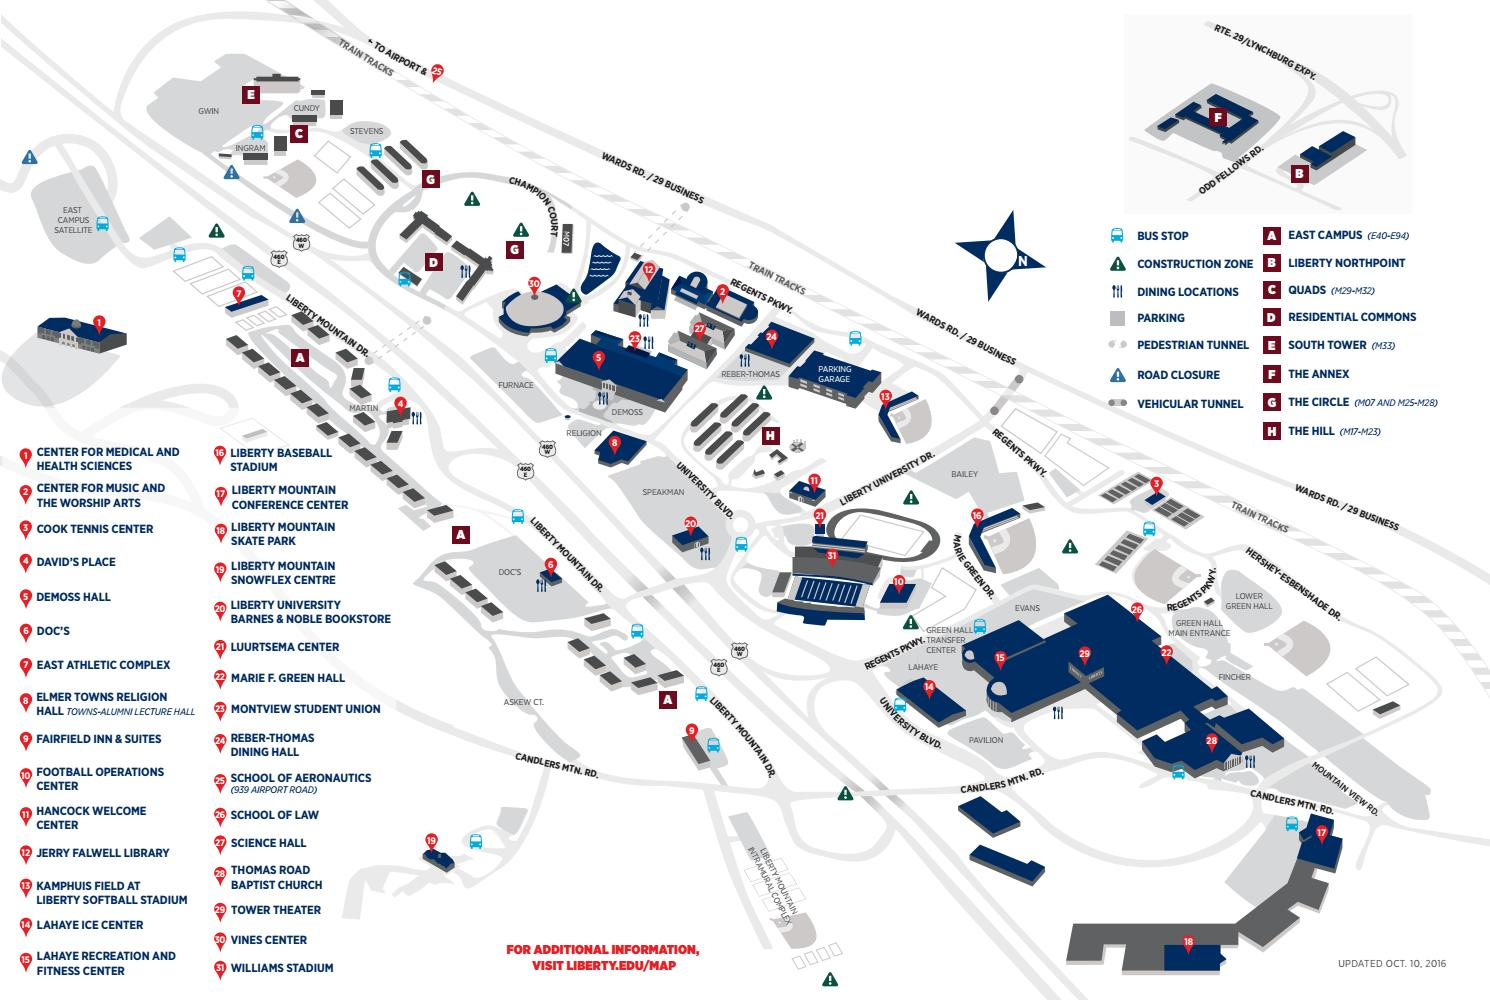 Liberty University Campus Map Liberty University Campus Map by Liberty University   issuu